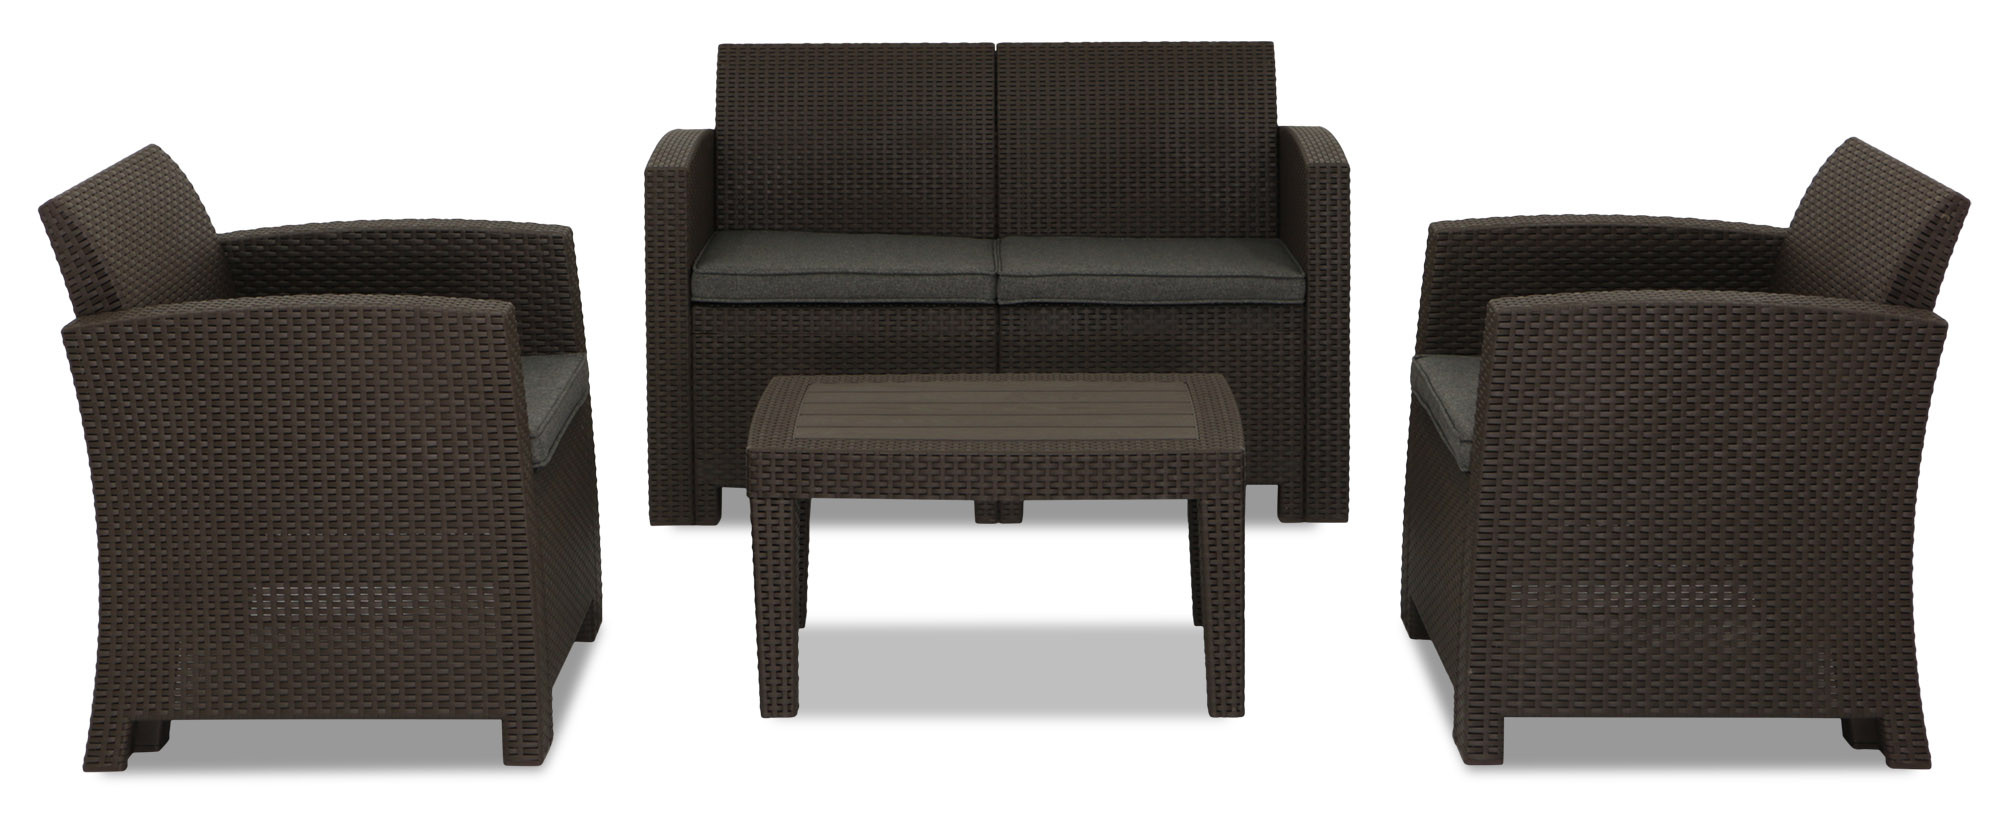 four seat sofa set sleeper sofas in dallas texas nina 4 seater outdoor brown furniture and home